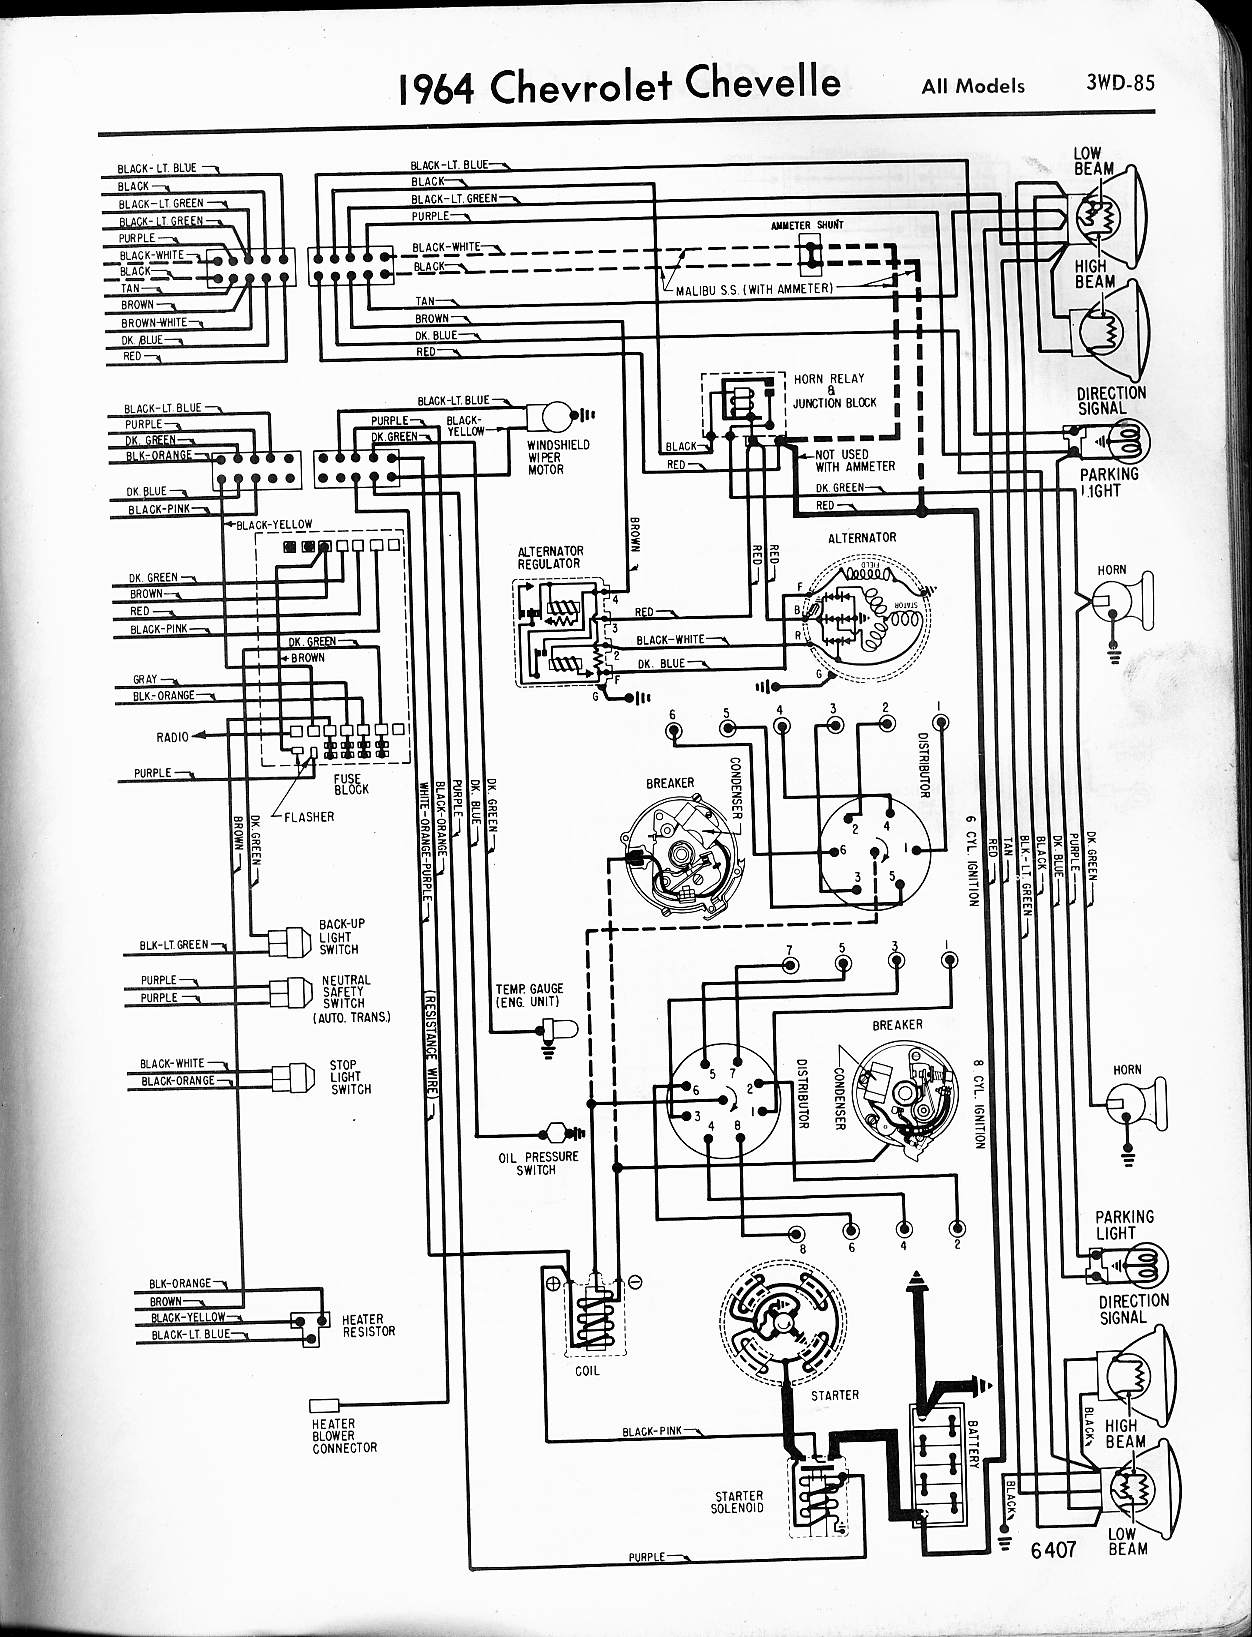 Dodge 360 Wiring Tach Schematic Diagrams Cj7 Tachometer Diagram Bzerob Com Technical Articles Library Section